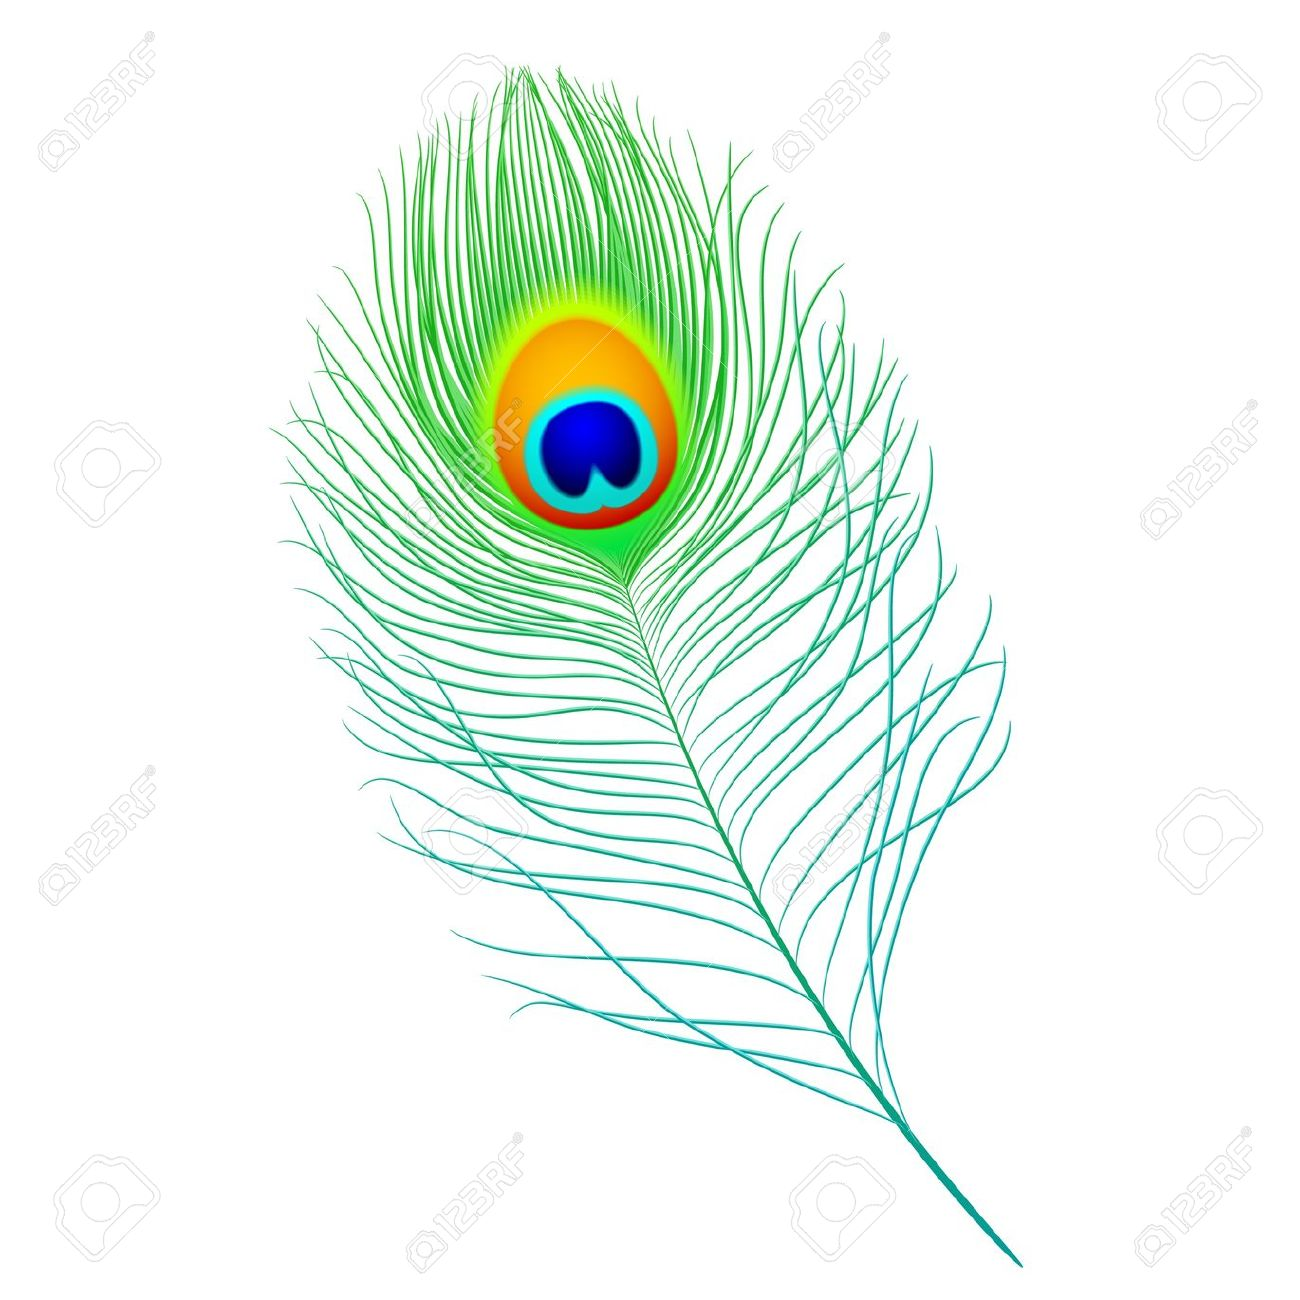 Clipart Of Peacock Feather.